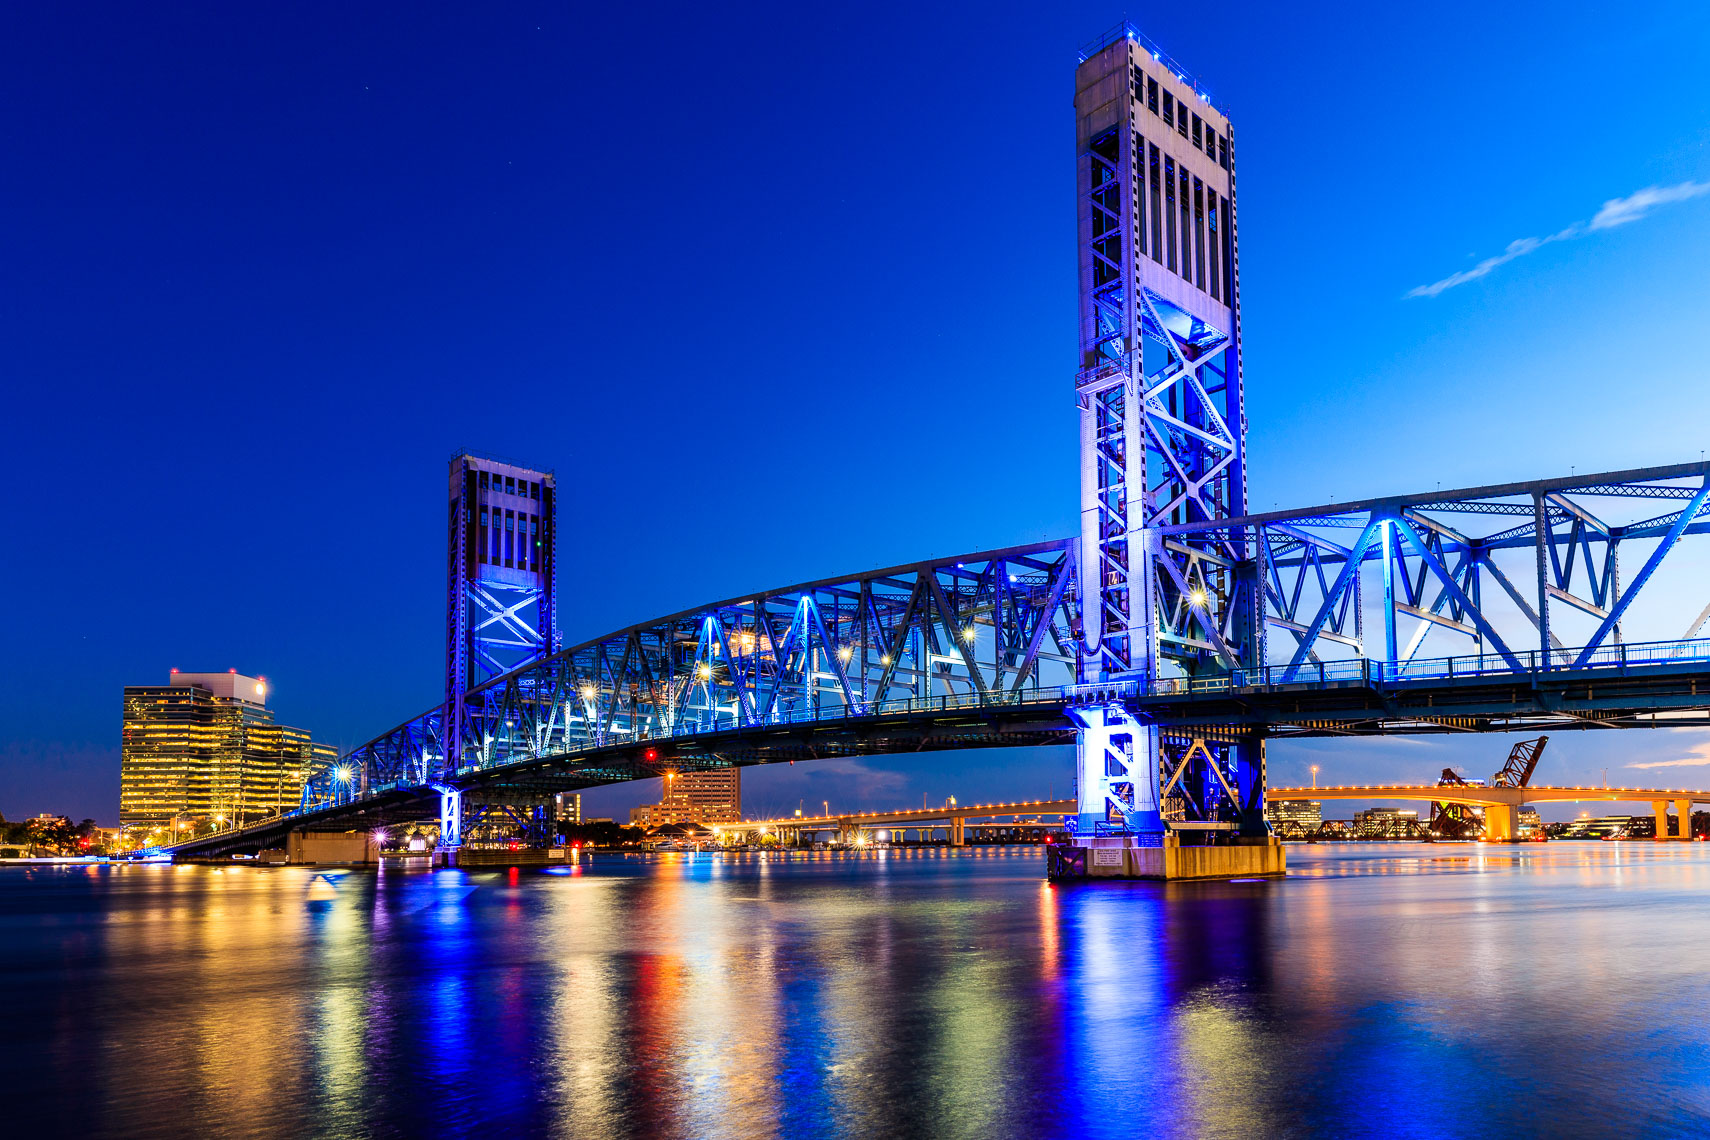 The Main Street Bridge in Jacksonville Florida